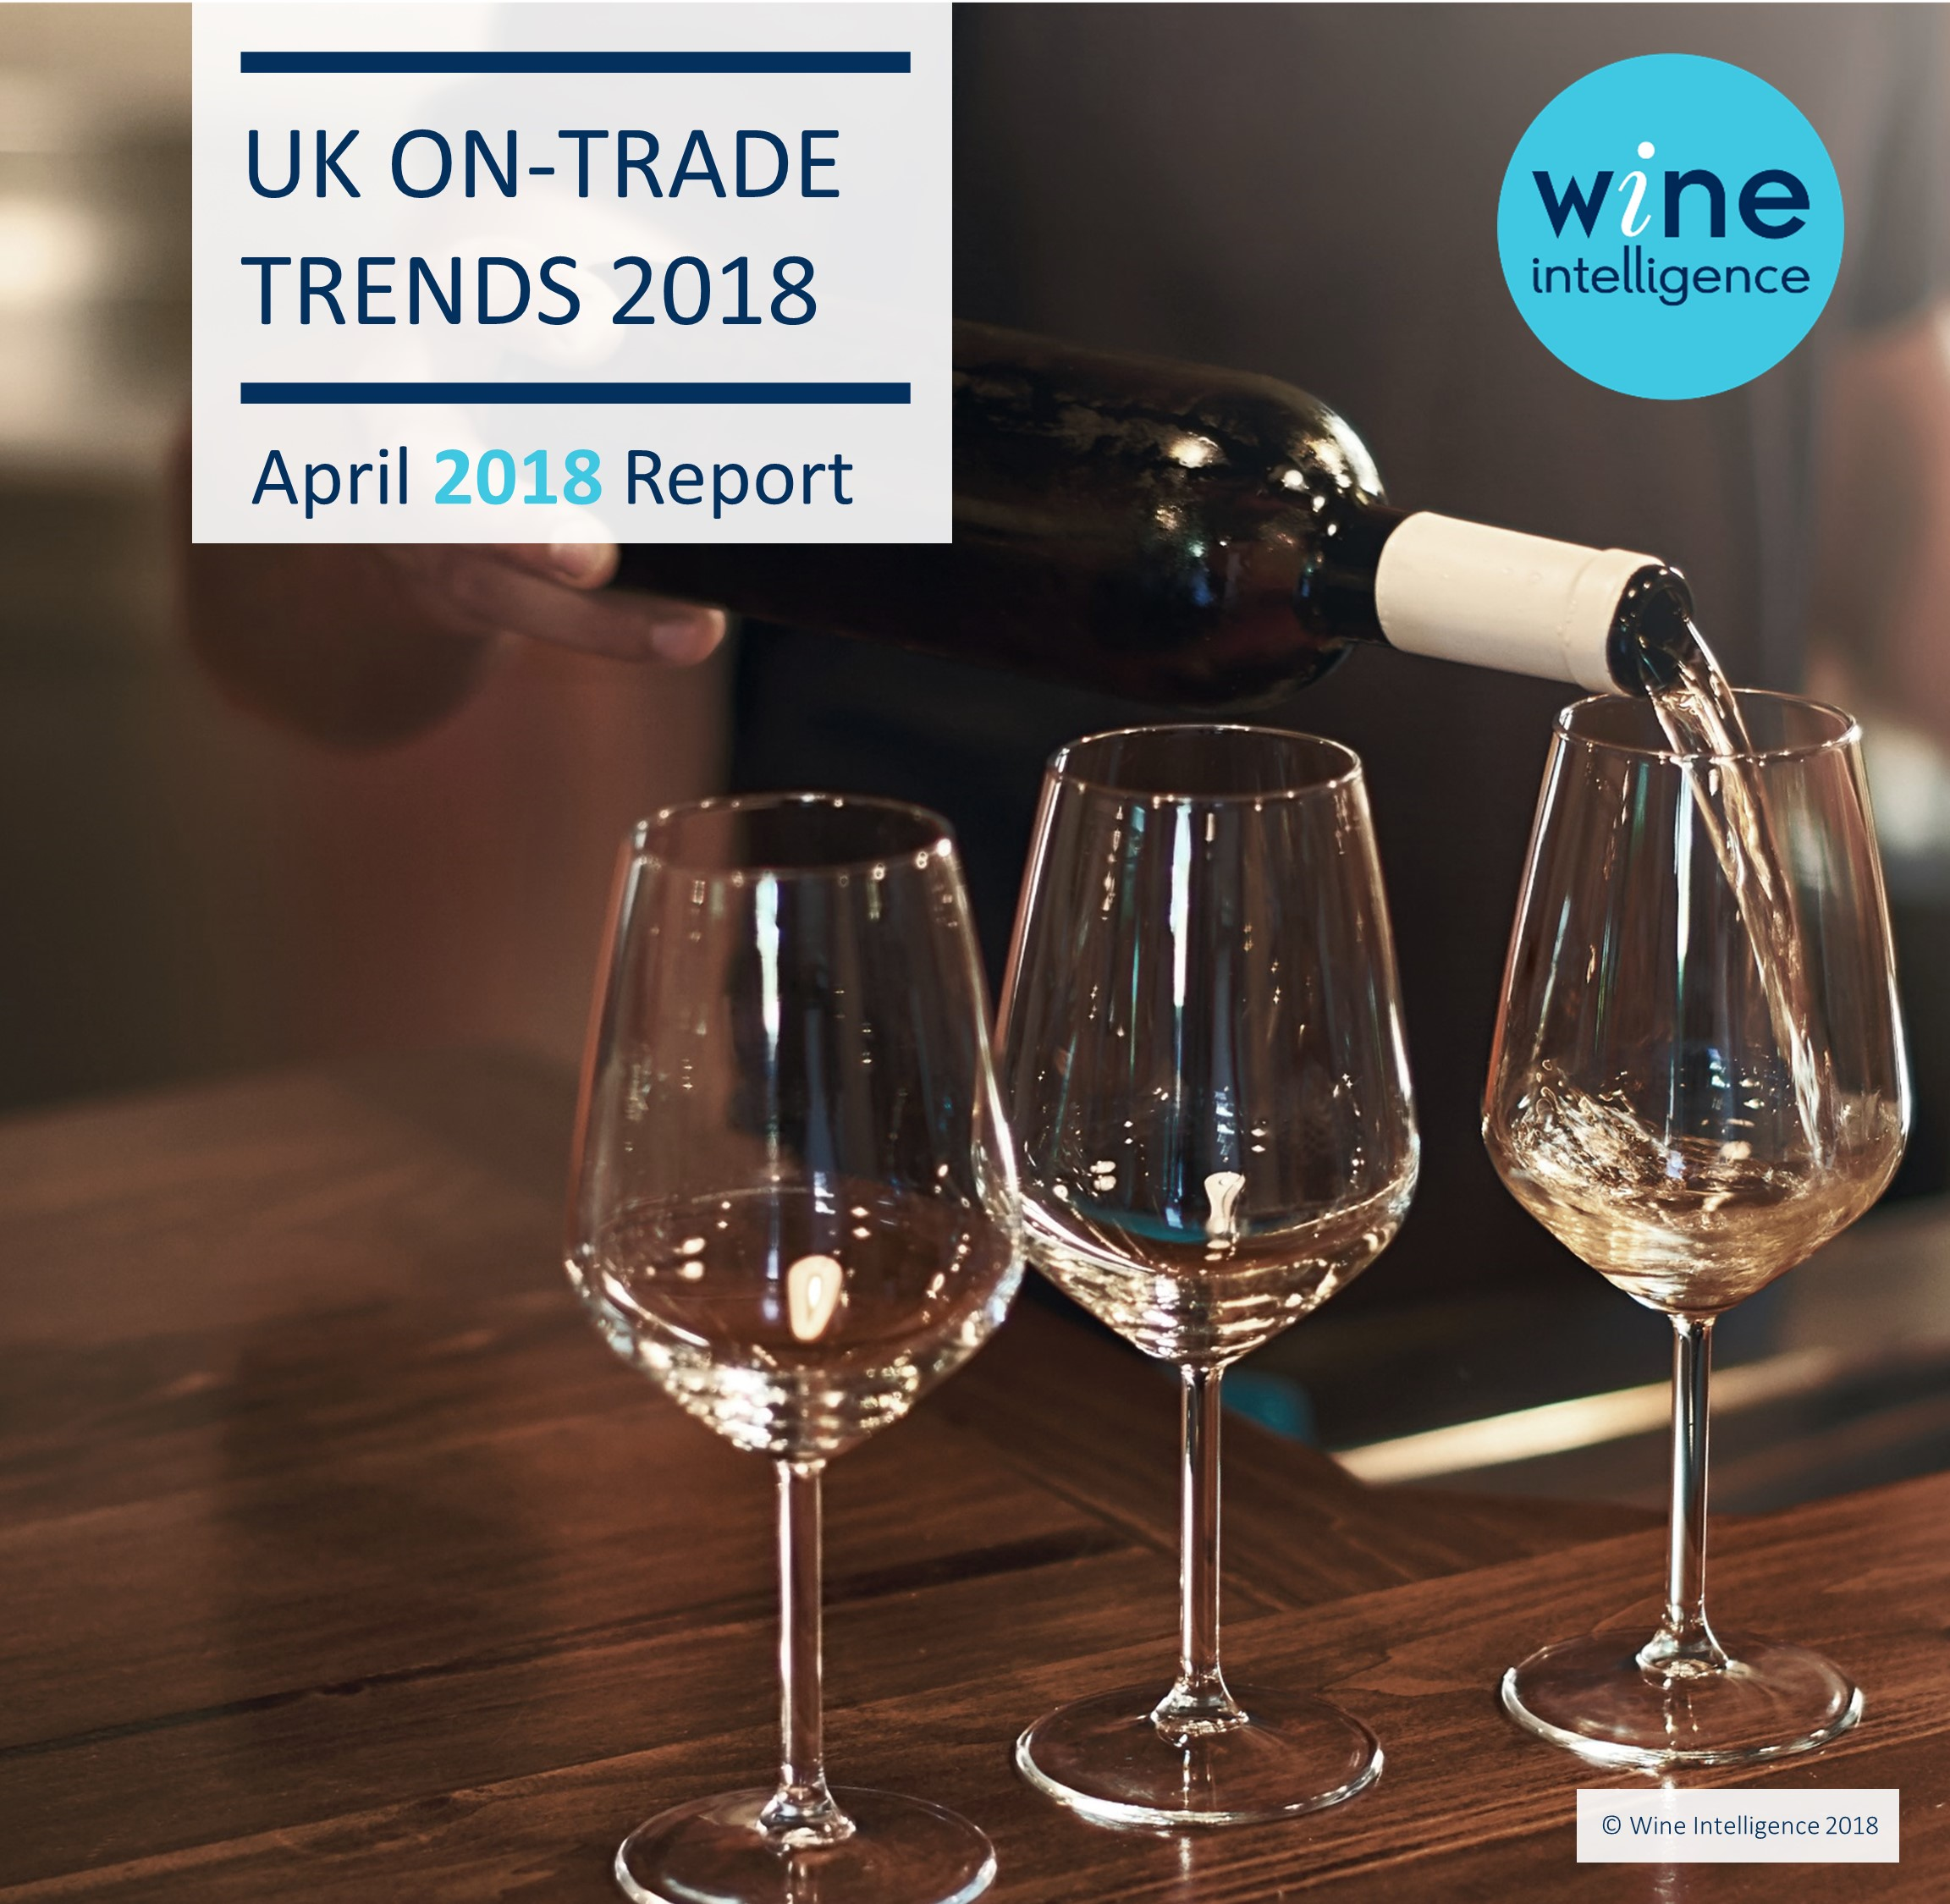 UK On trade trends 2018 - Press Release: Young consumers in Australia are more comfortable buying wine in alternative size formats compared to their older peers, according to a new report by Wine Intelligence